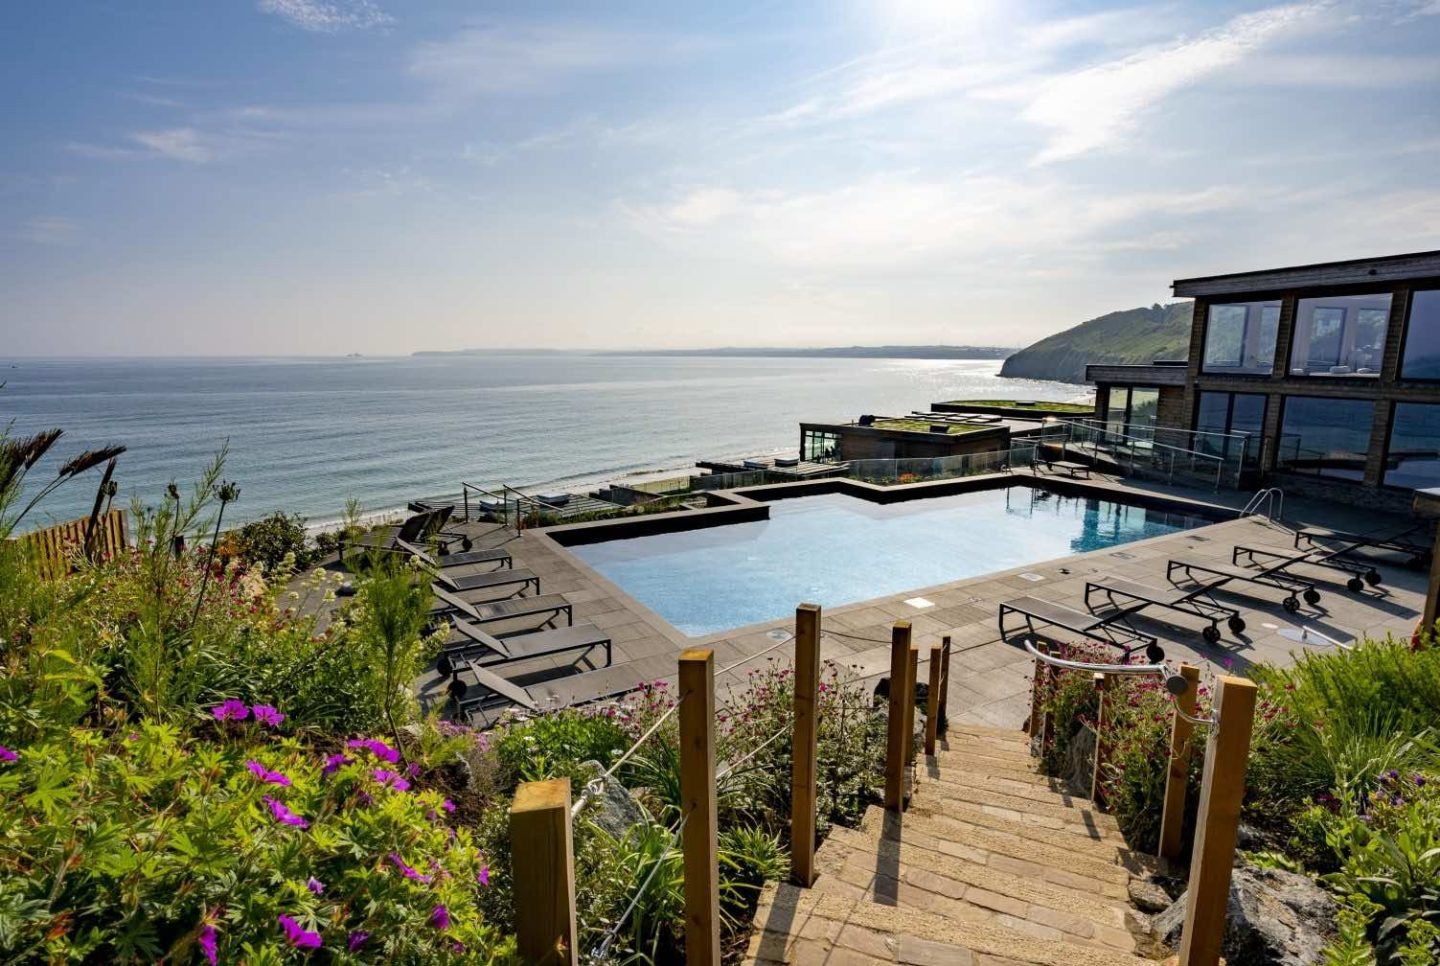 Carbis Bay Outdoor Pool